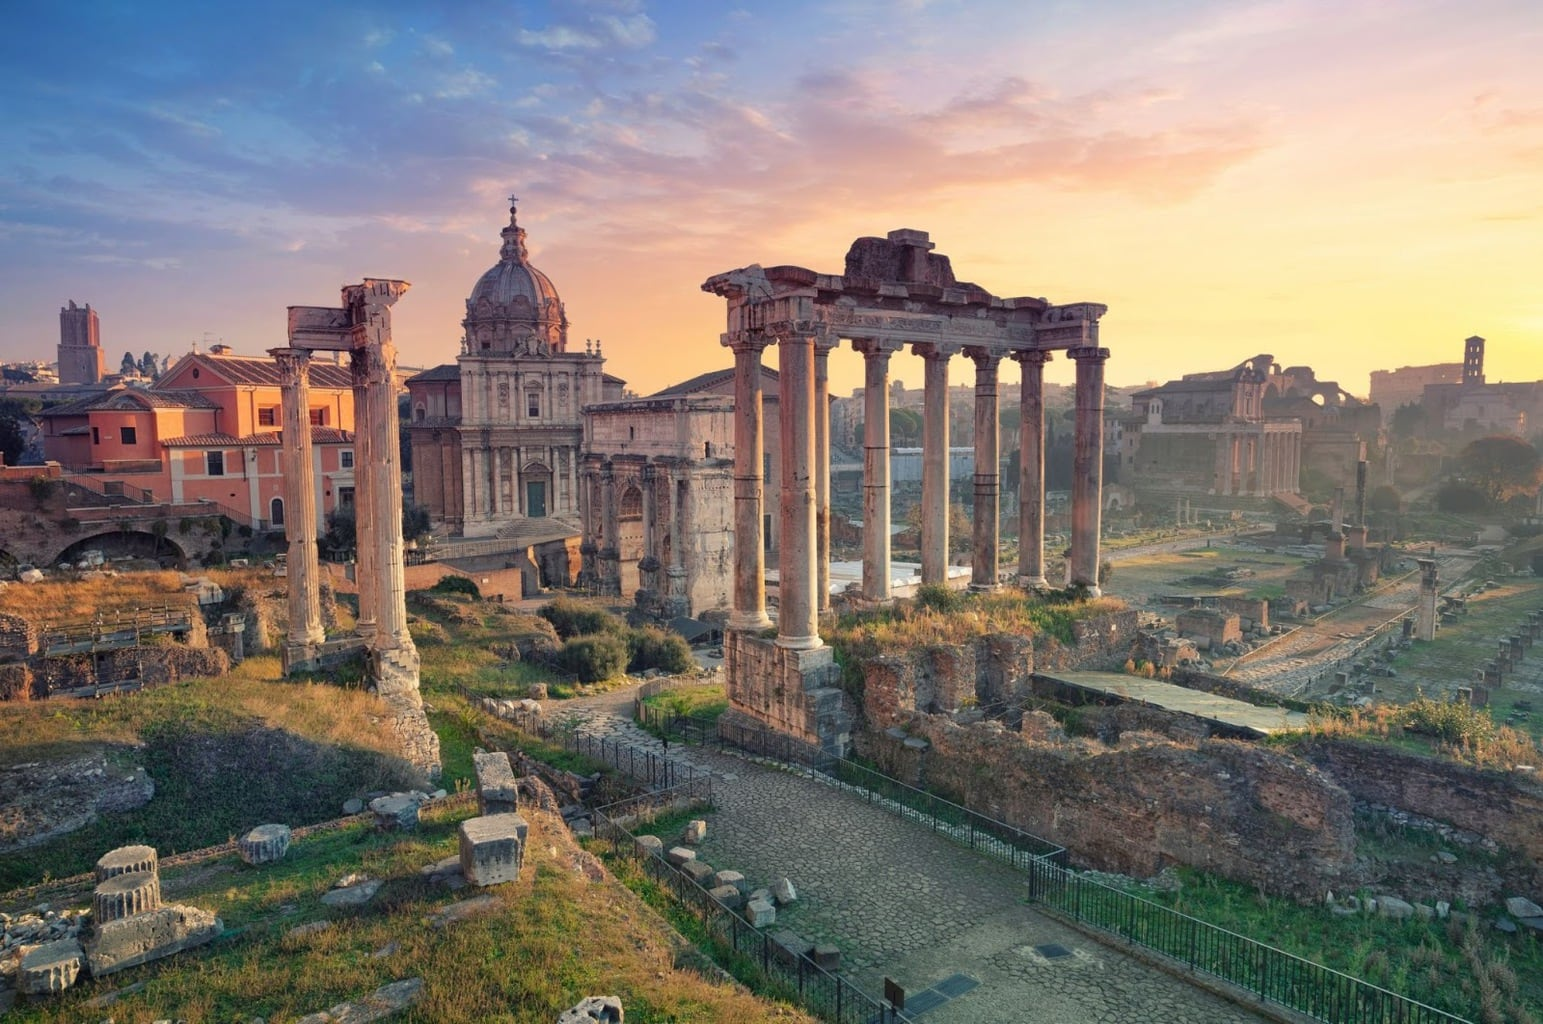 The remains of the Roman Forum